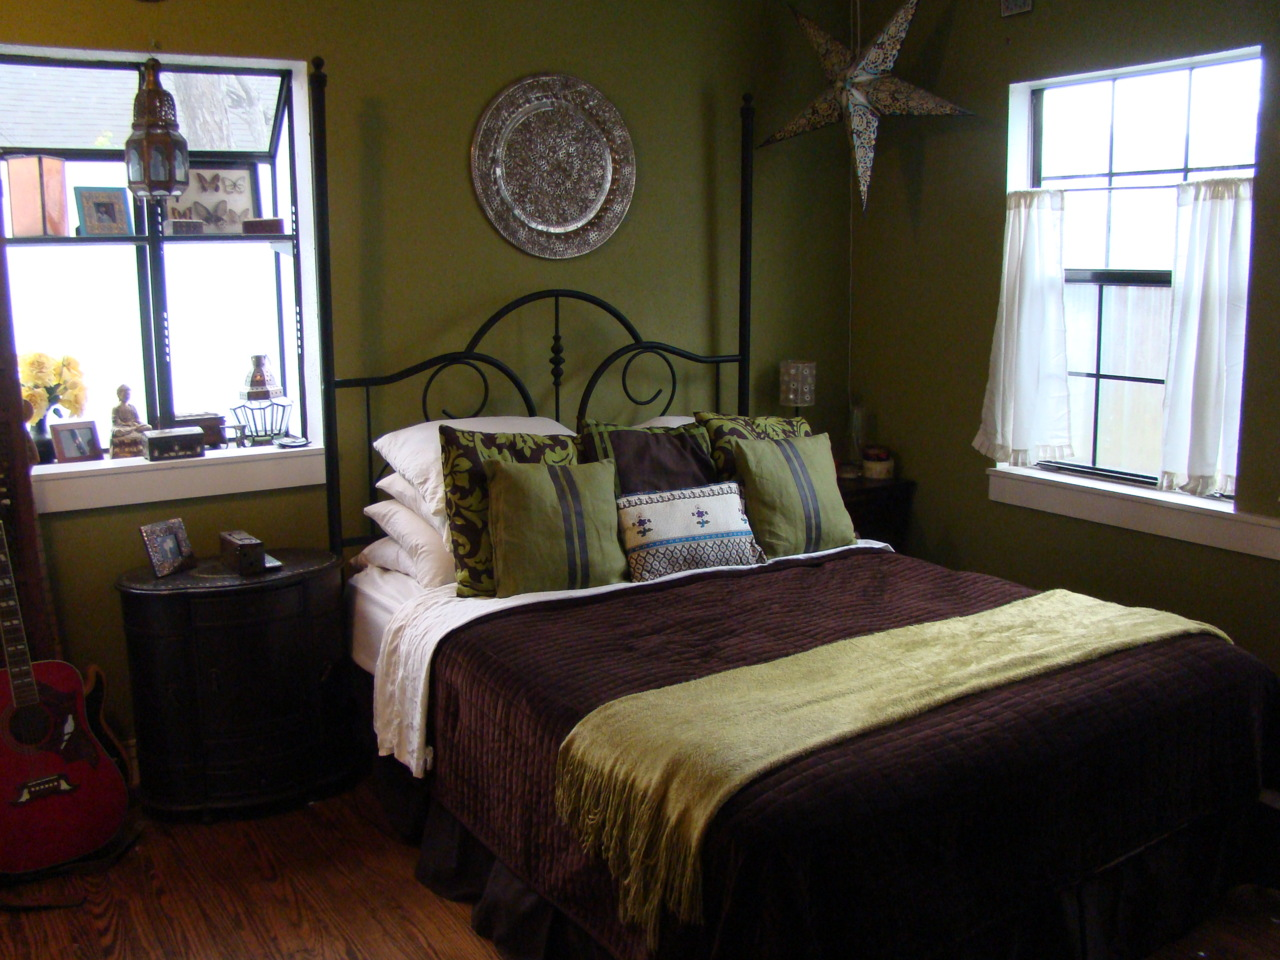 I loved our itty bitty bedroom! The natural light always kept it from feeling cramped and dark.